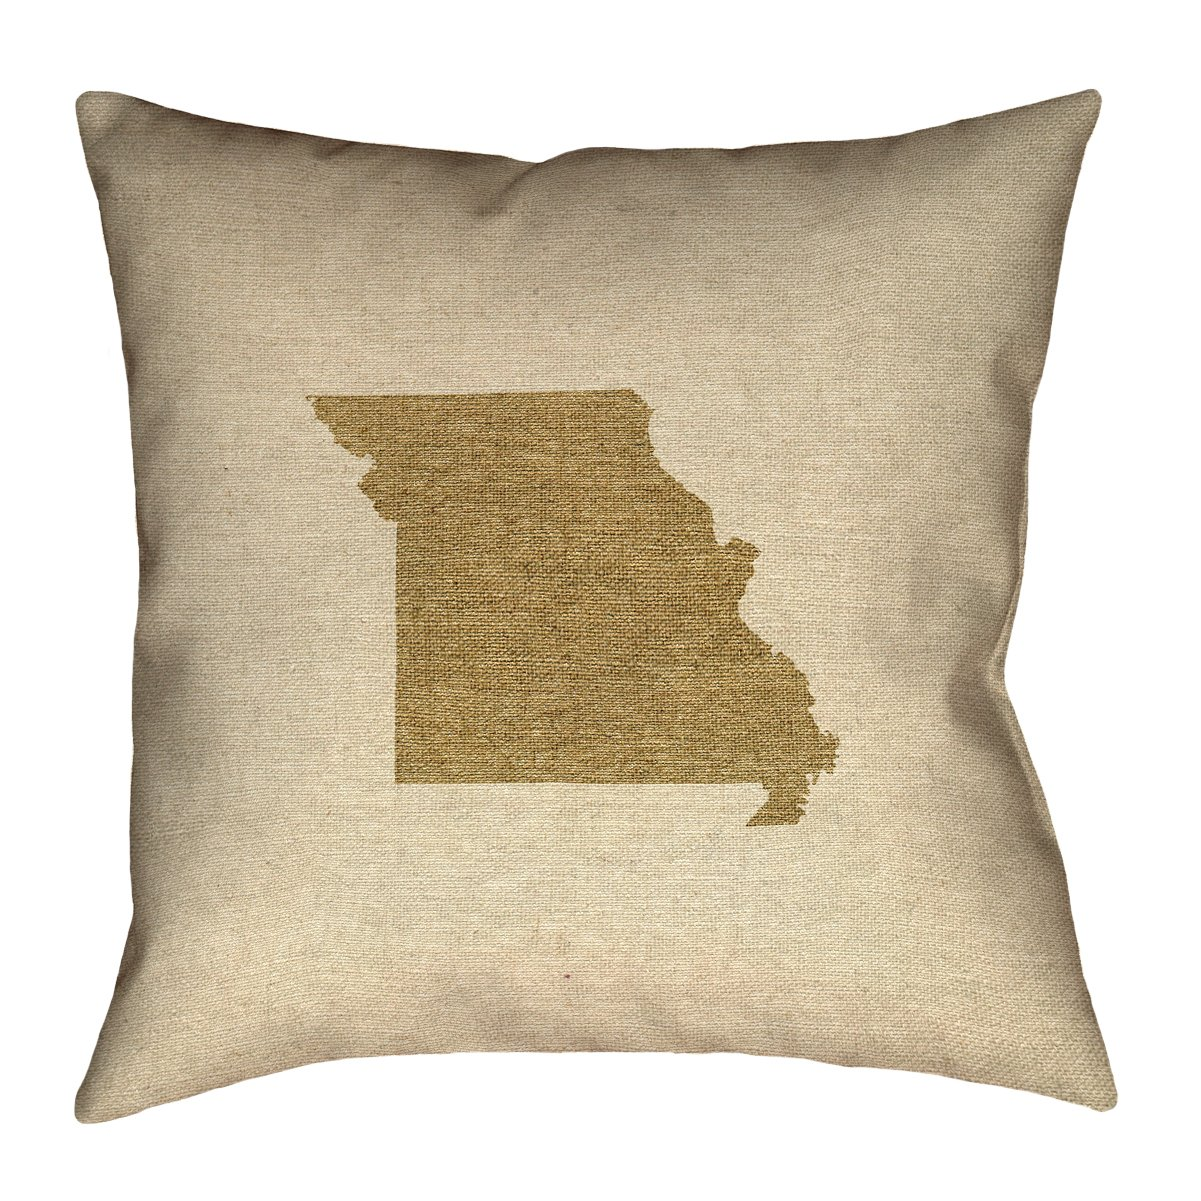 ArtVerse Katelyn Smith Missouri Canvas 14' x 14' Pillow-Faux Linen (Updated Fabric) Double Sided Print with Concealed Zipper & Insert